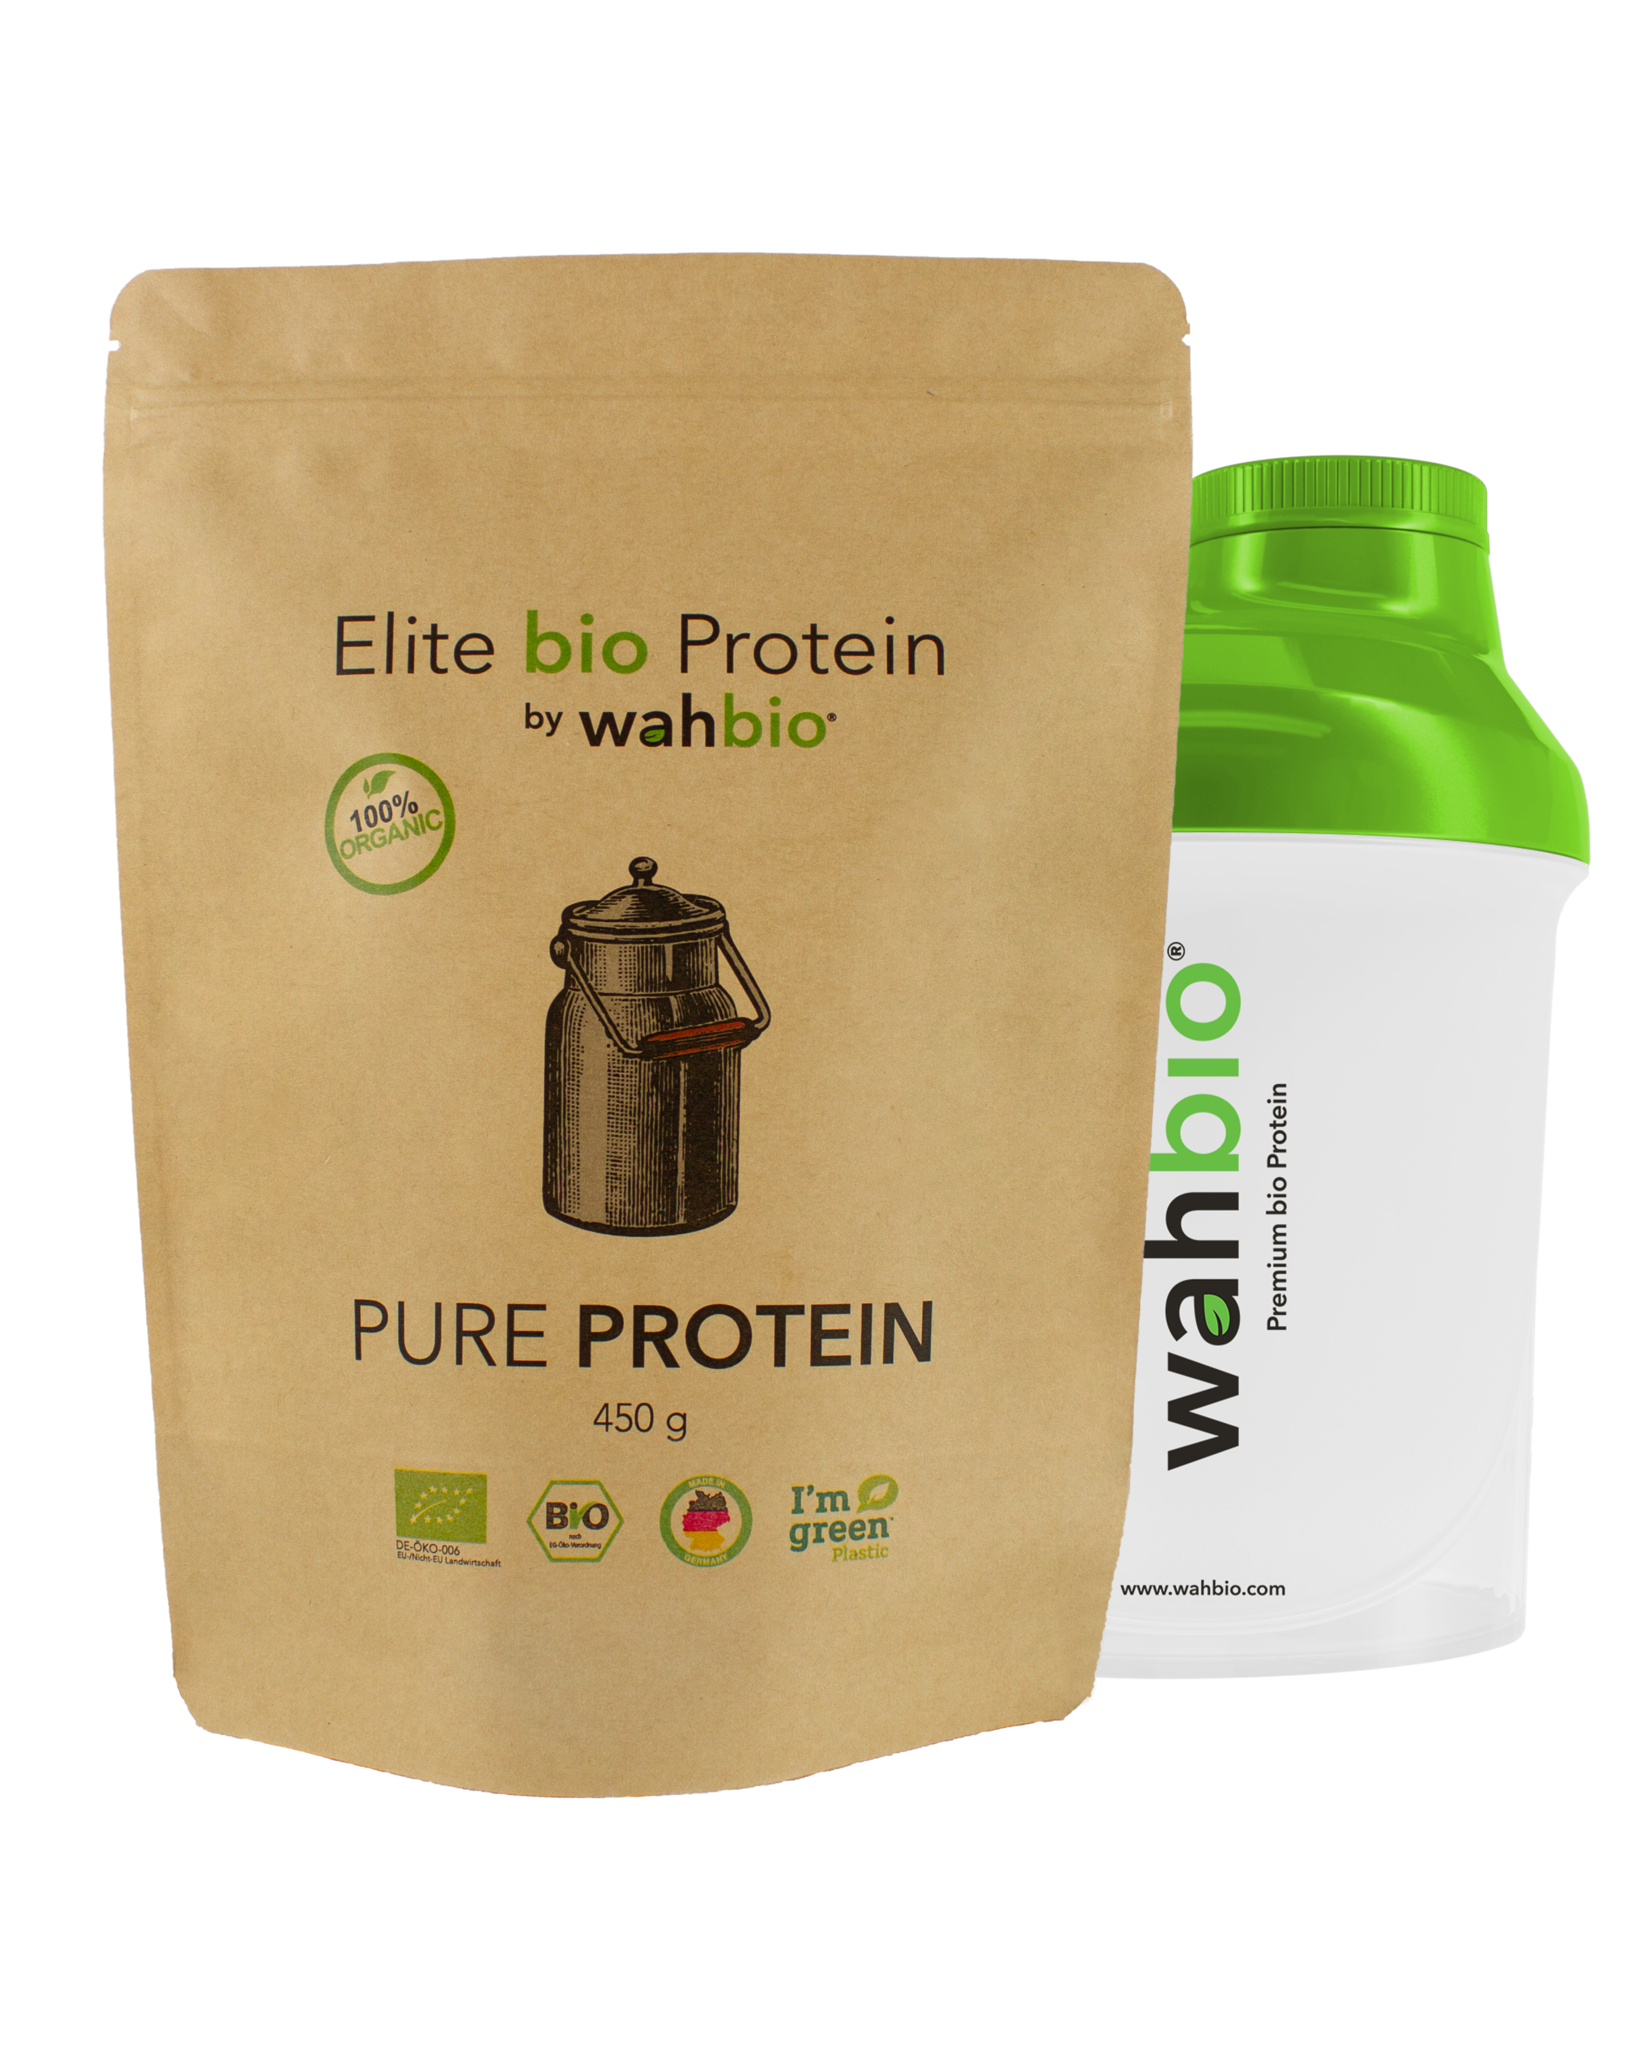 Elite Organic Protein by wahbio   Pure Protein    450 Gr.  with Travel Shaker 300ml